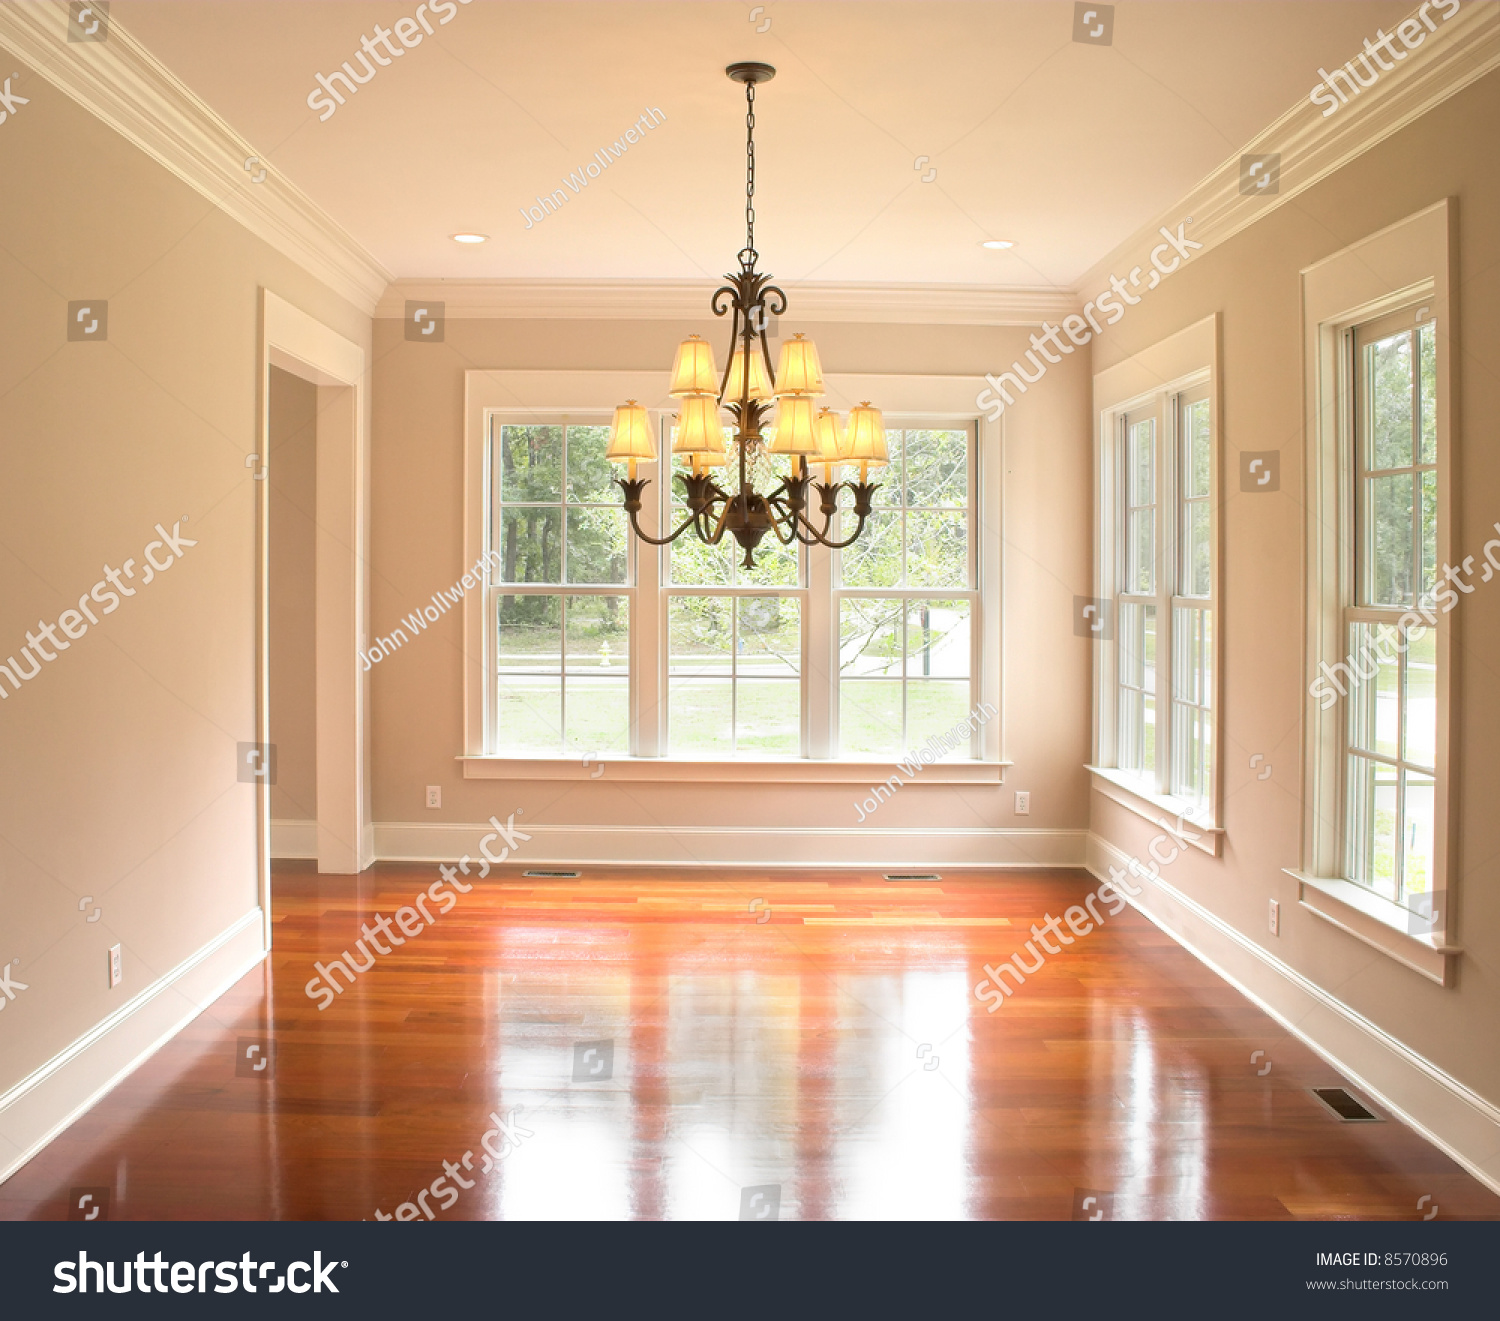 Empty Living Room: Cozy Unfurnished Dining Room Lots Windows Stock Photo